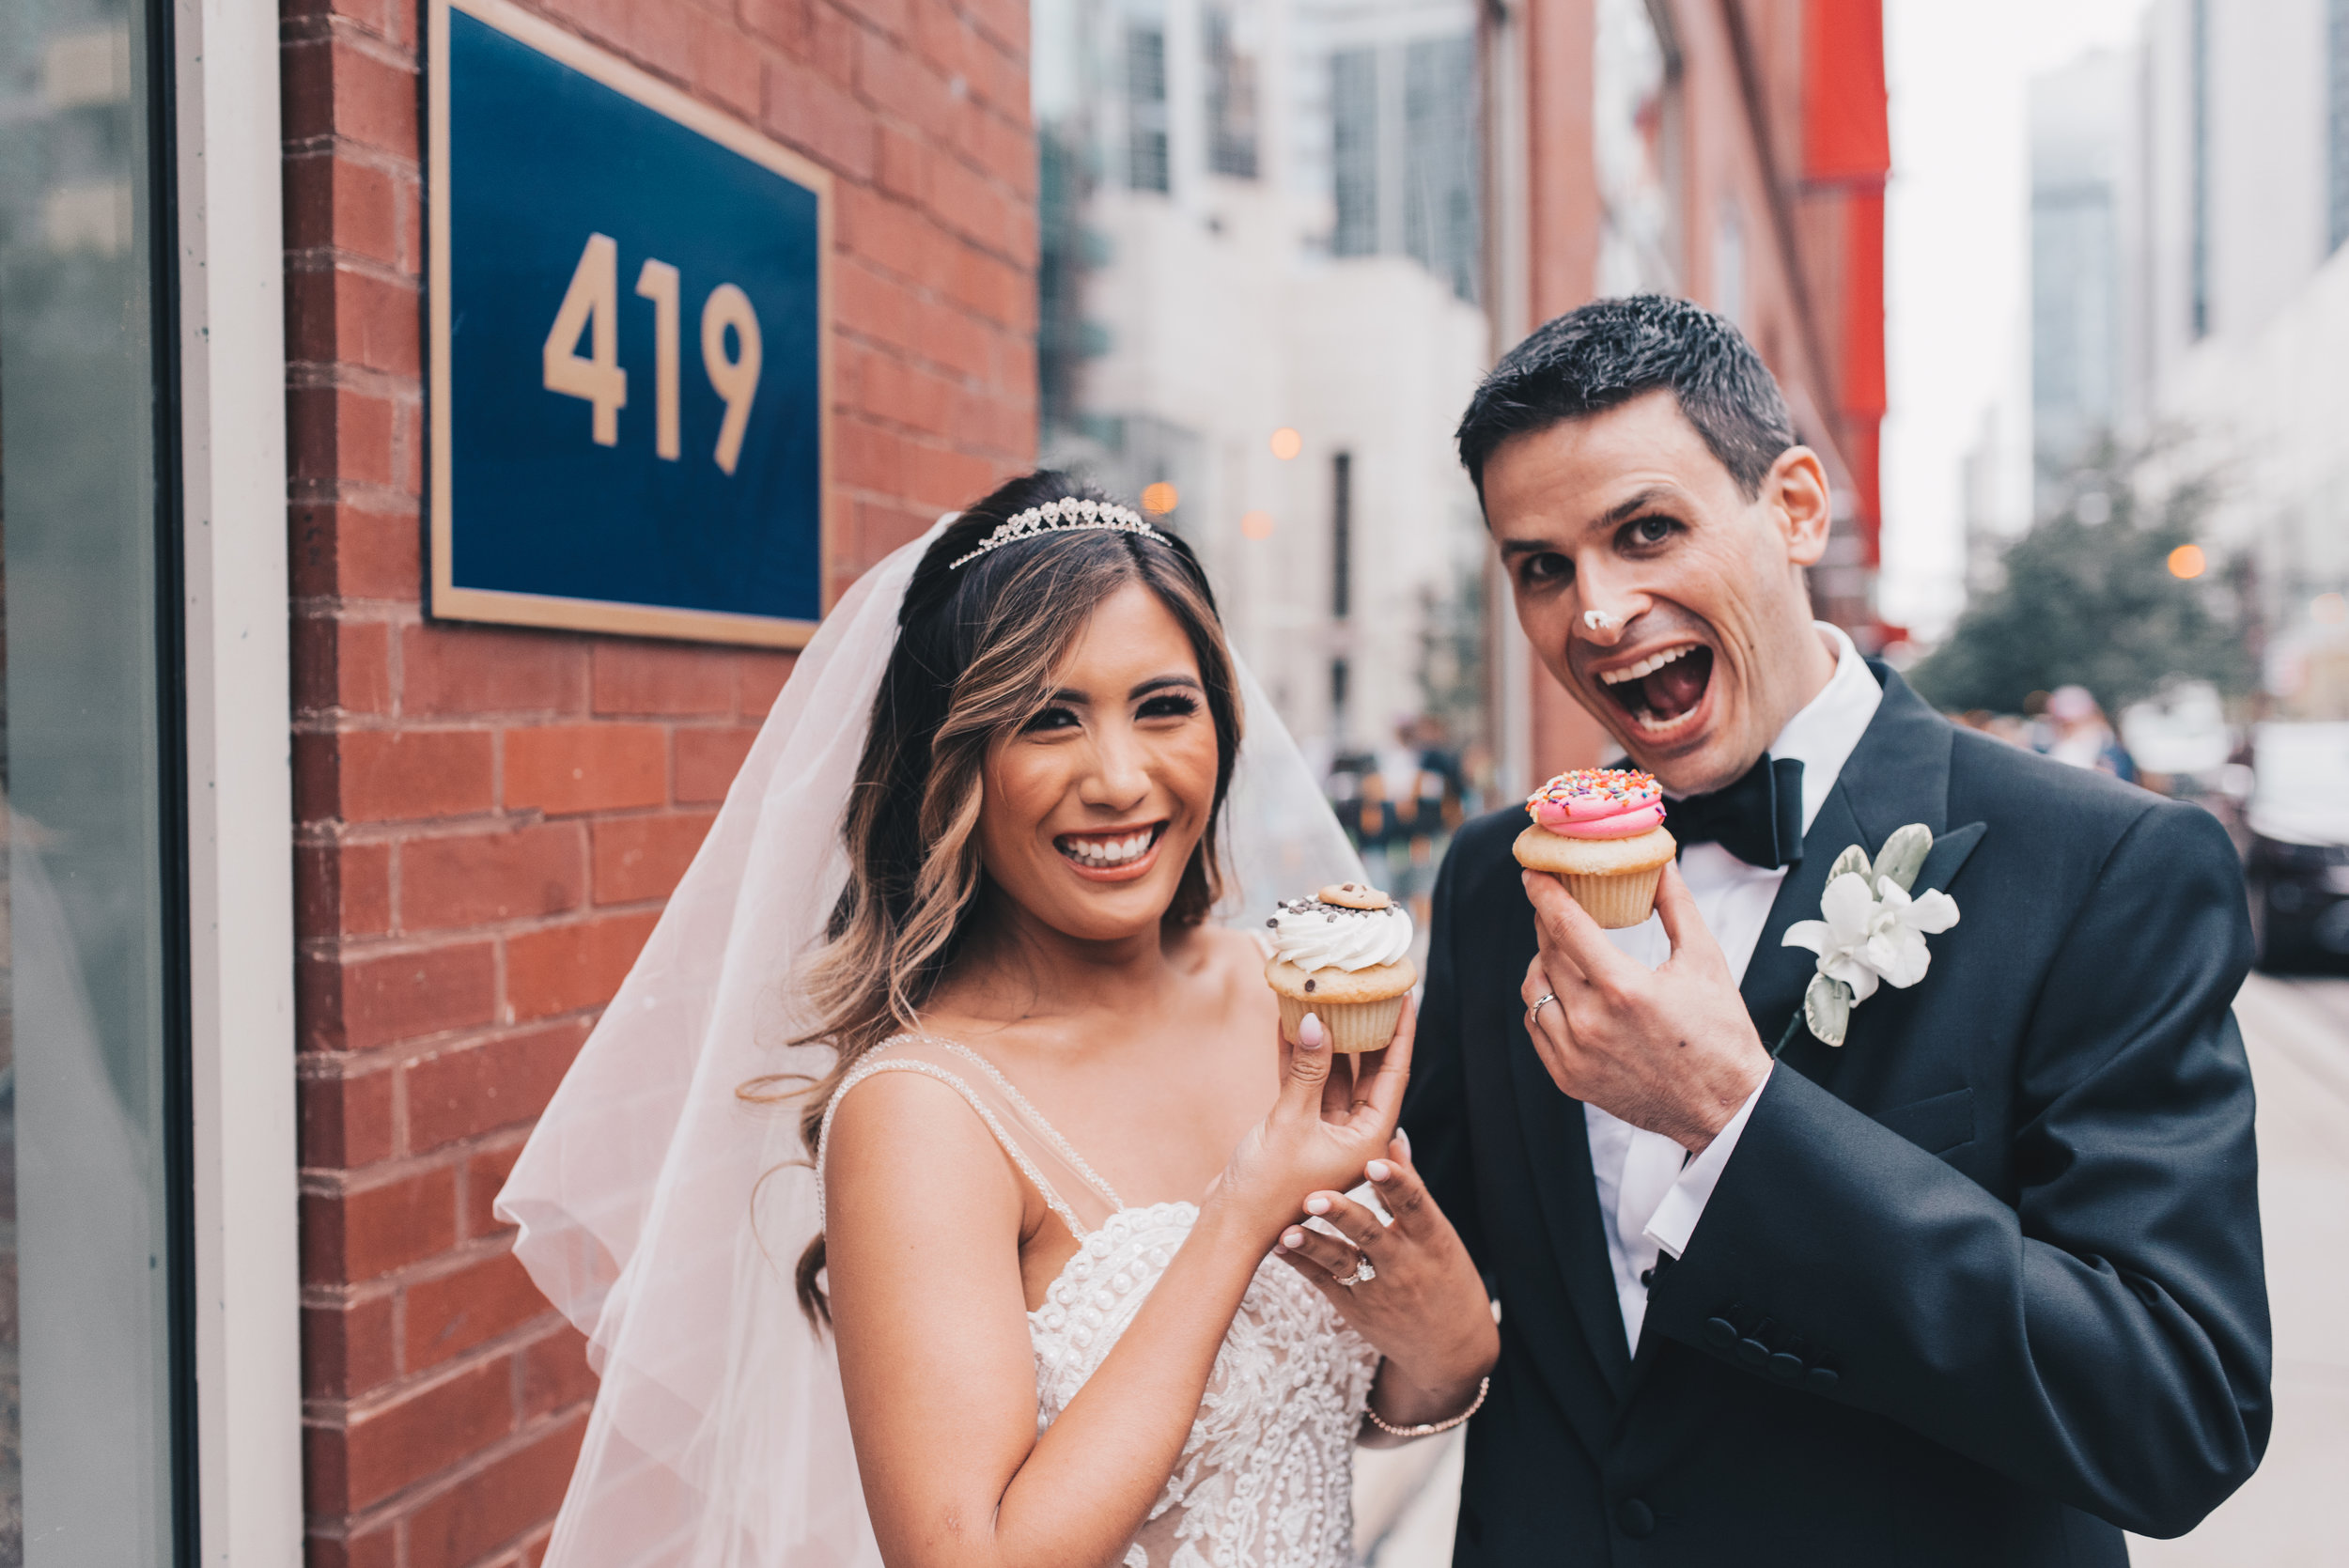 Chicago Bride and Groom Photos, Chicago Wedding, Chicago Wedding Photographer, Chicago Elopement Photographer, Chicago Bride and Groom Photos, Bride and Groom Photos